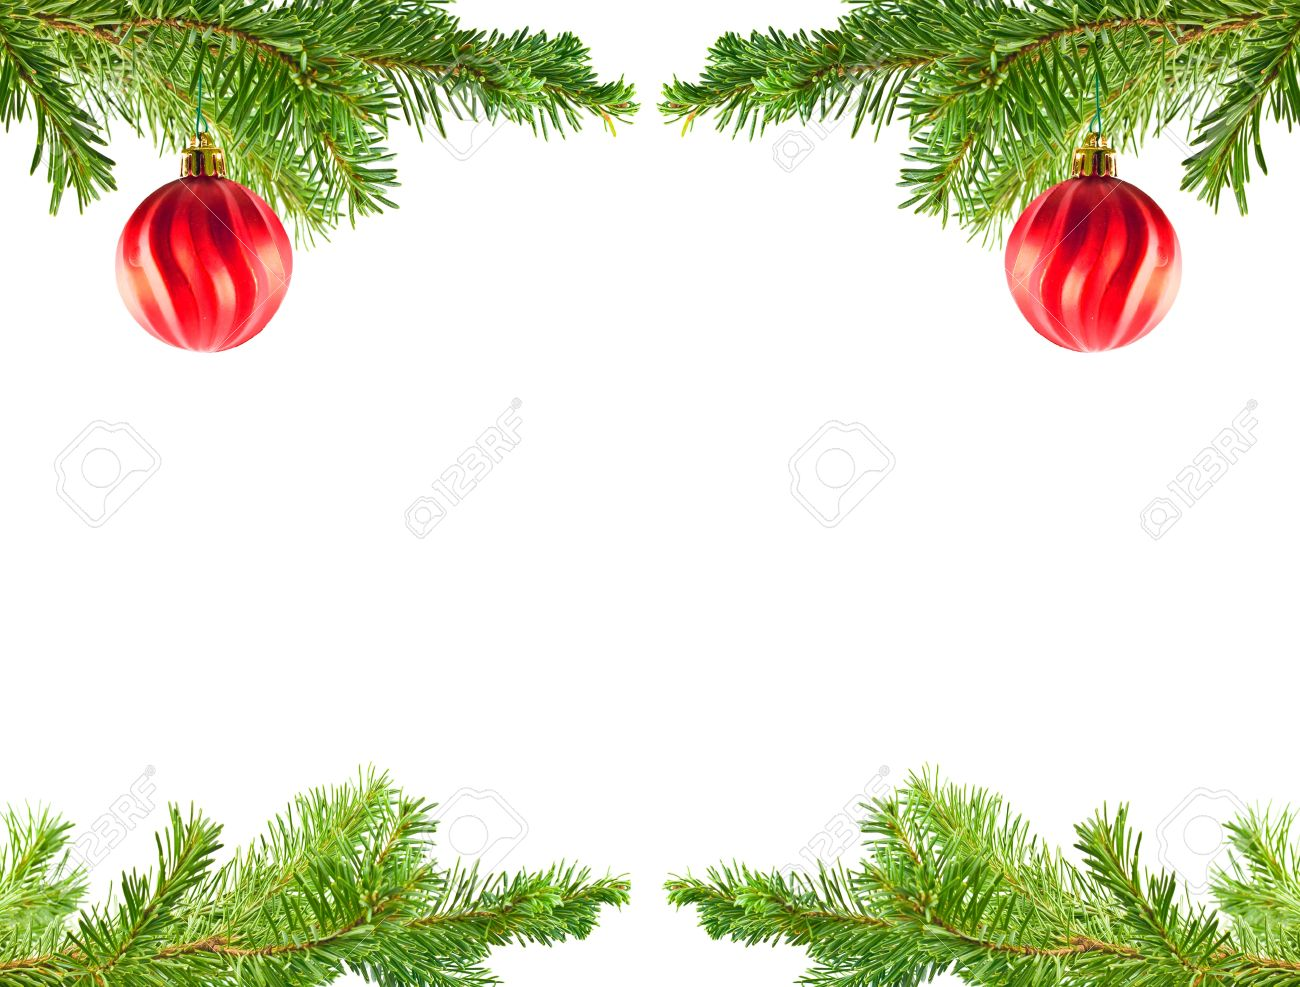 Picture frame christmas ornaments - Christmas Tree Holiday Ornaments On An Evergreen Branch Frame Stock Photo 12675276